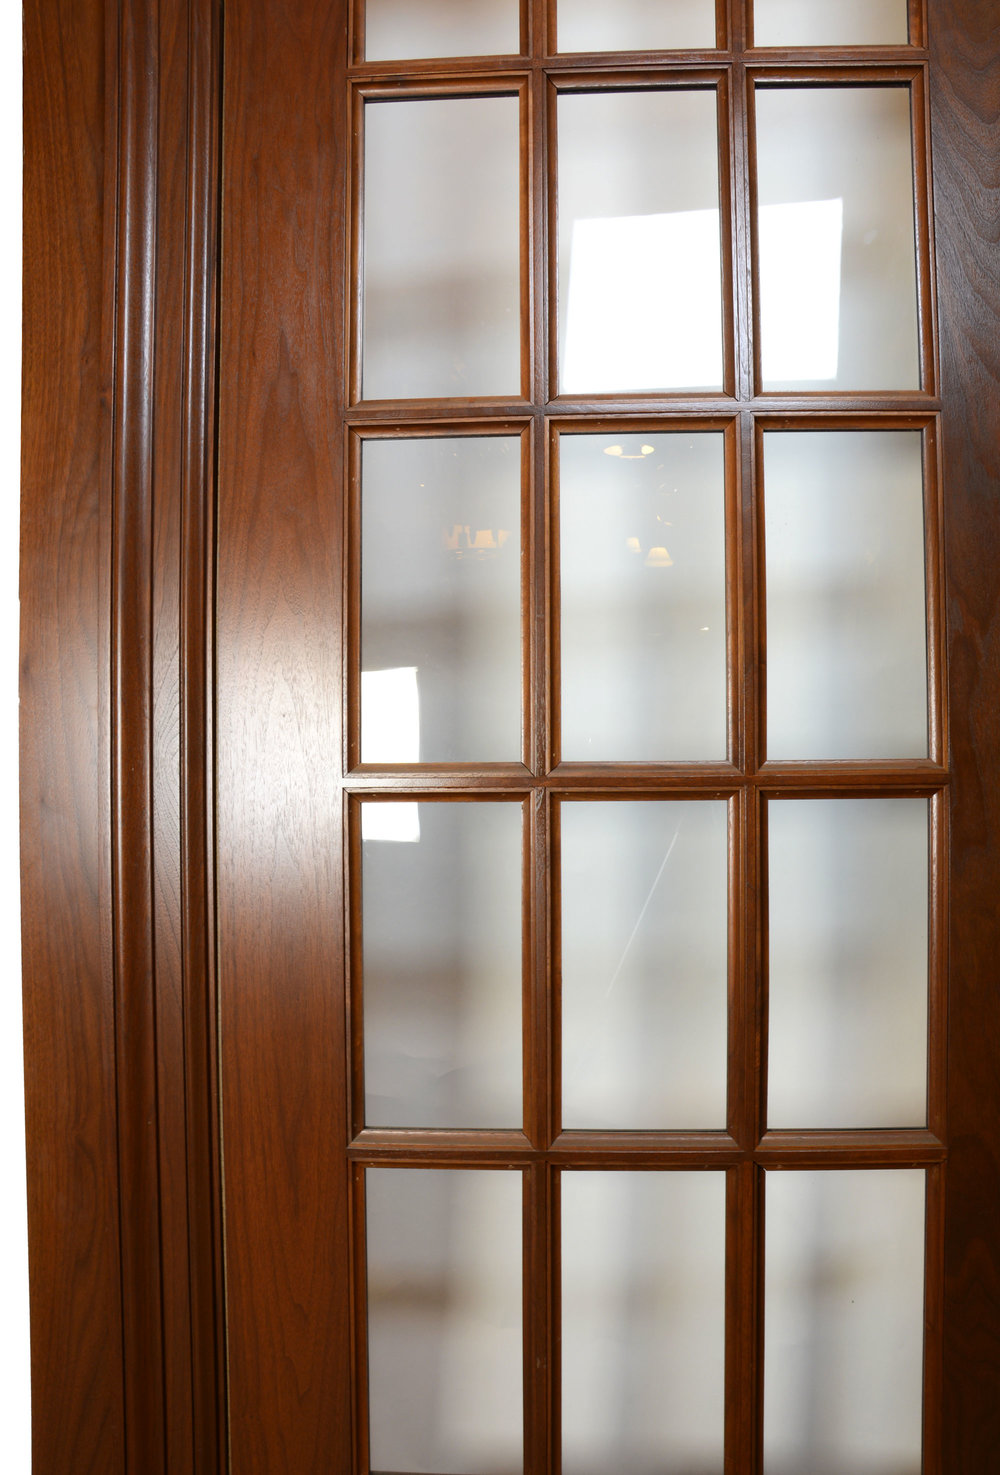 42266-walnut-french-window-door-MORE-DETAIL.jpg